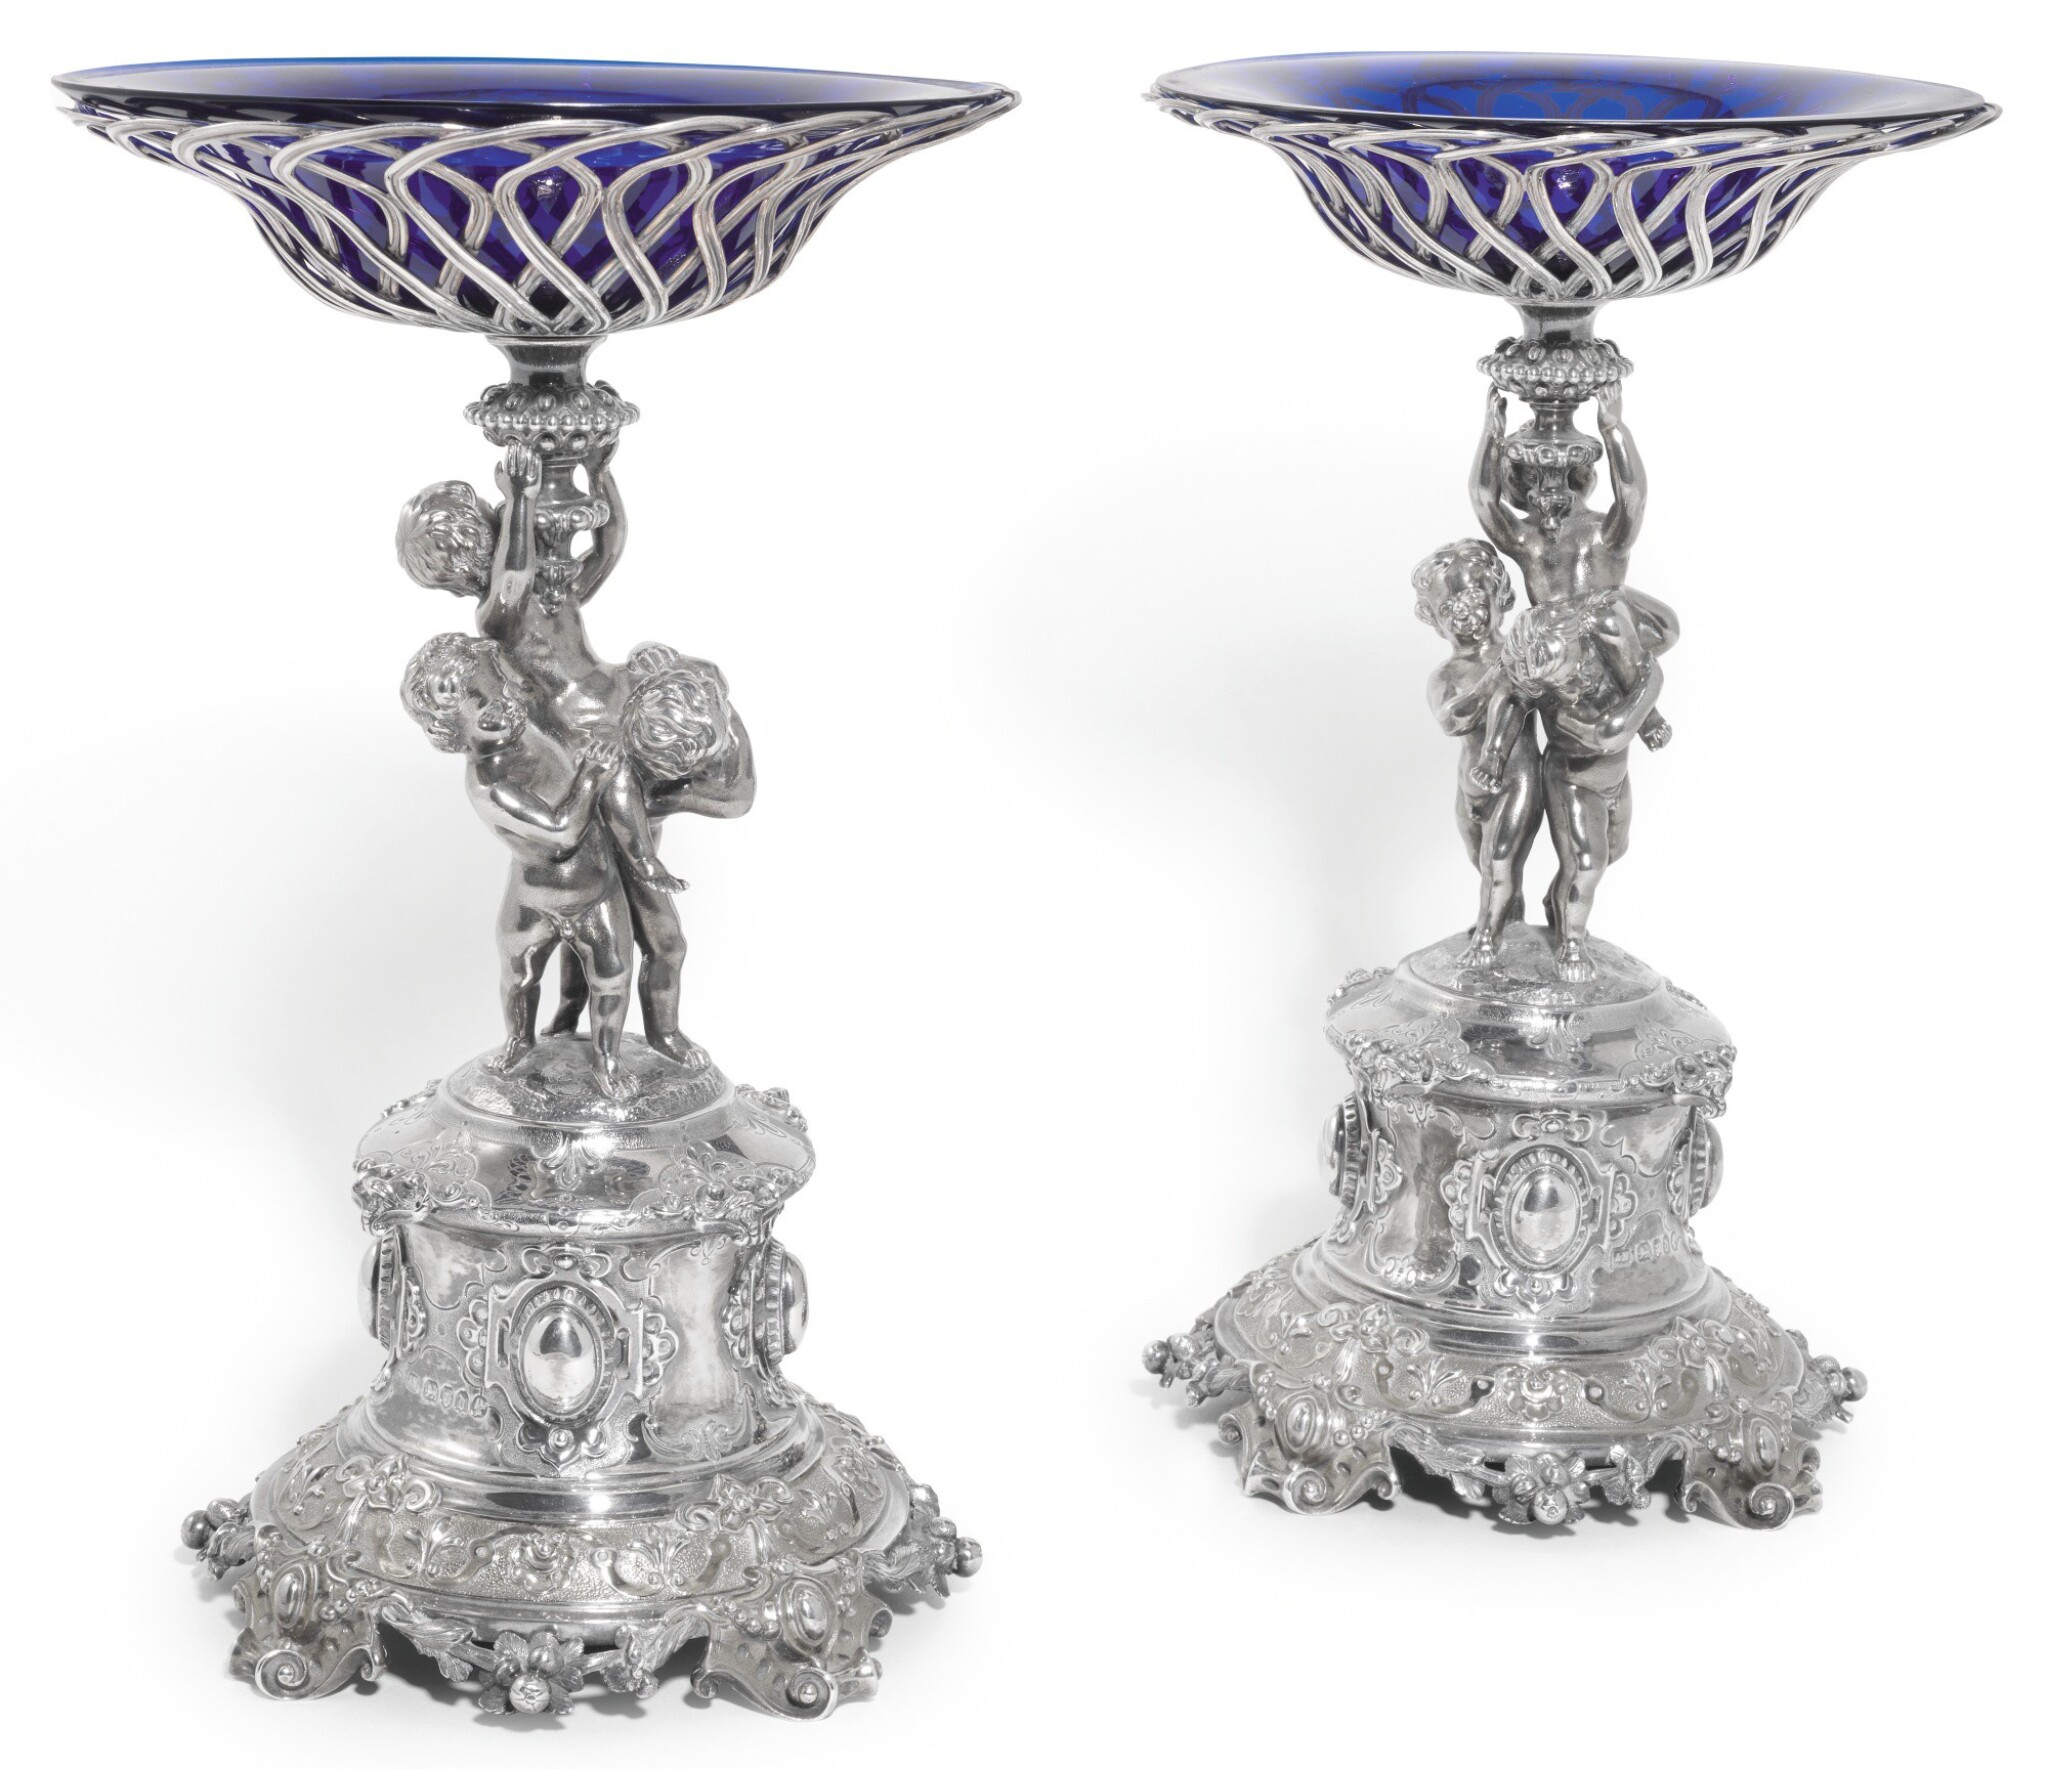 View full screen - View 1 of Lot 144. A PAIR OF VICTORIAN PARCEL-GILT SILVER COMPORTS, ALEXANDER MACRAE FOR HARRY EMMANUEL, LONDON, 1859.